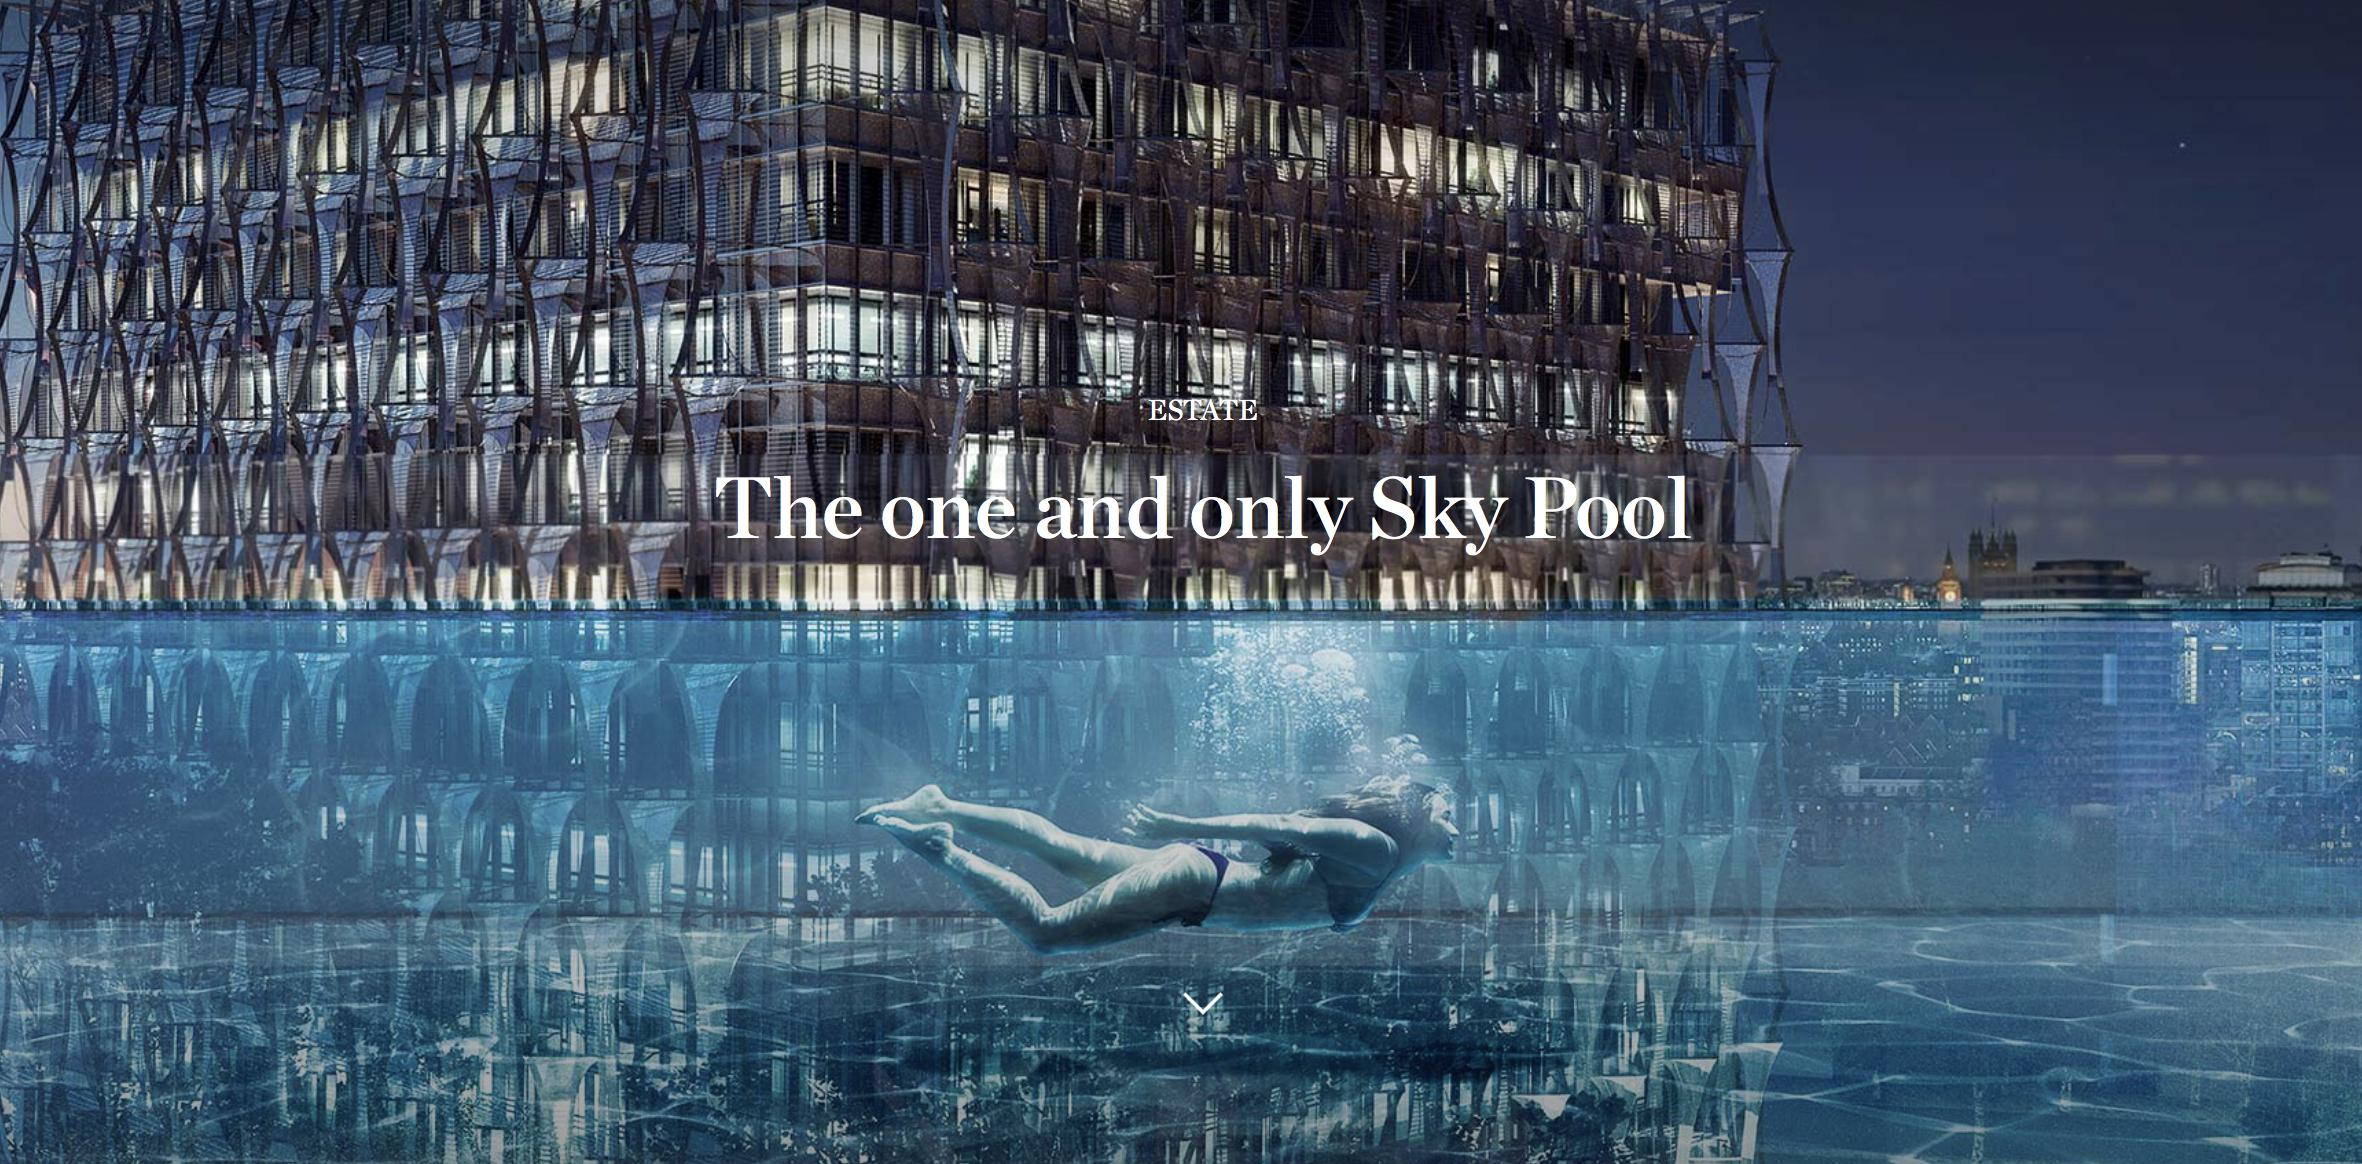 Cash Pool London World S First Sky Pool That Floats 115ft Above London On Offer